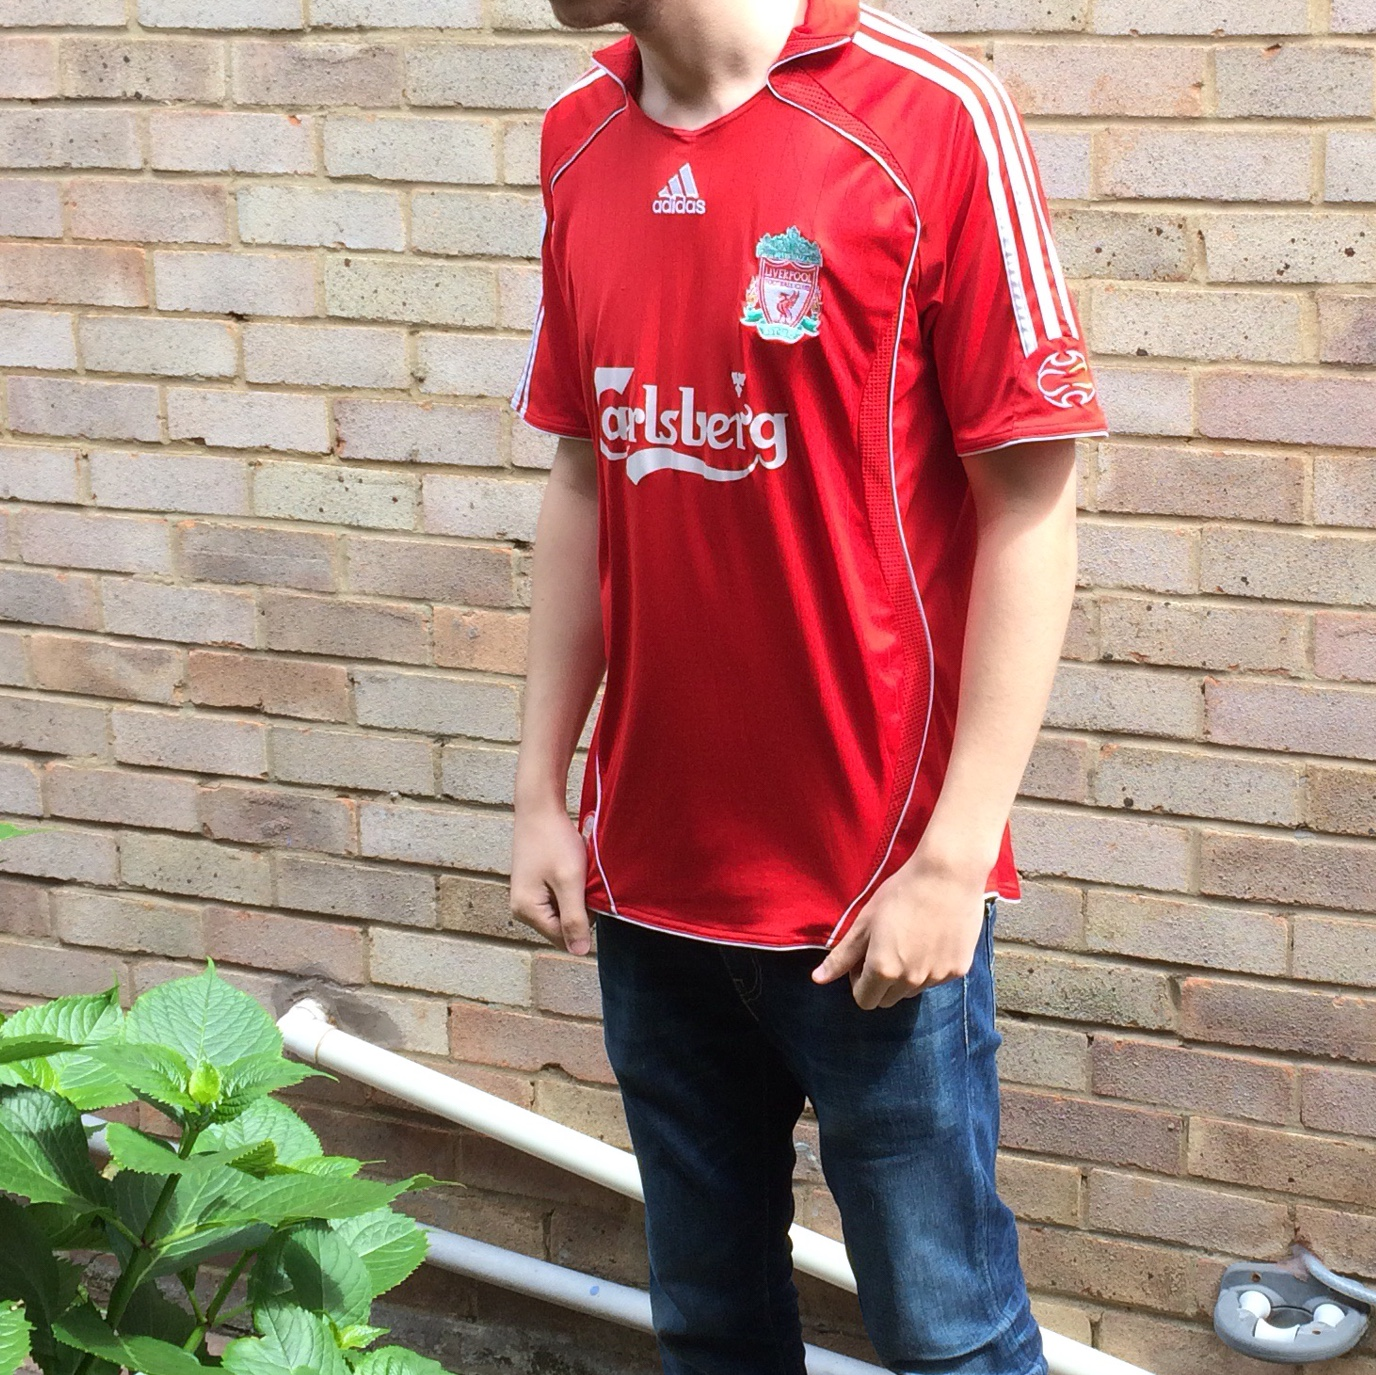 competitive price d097a fad50 Liverpool 06/07 Home Shirt Some small pulls... - Depop